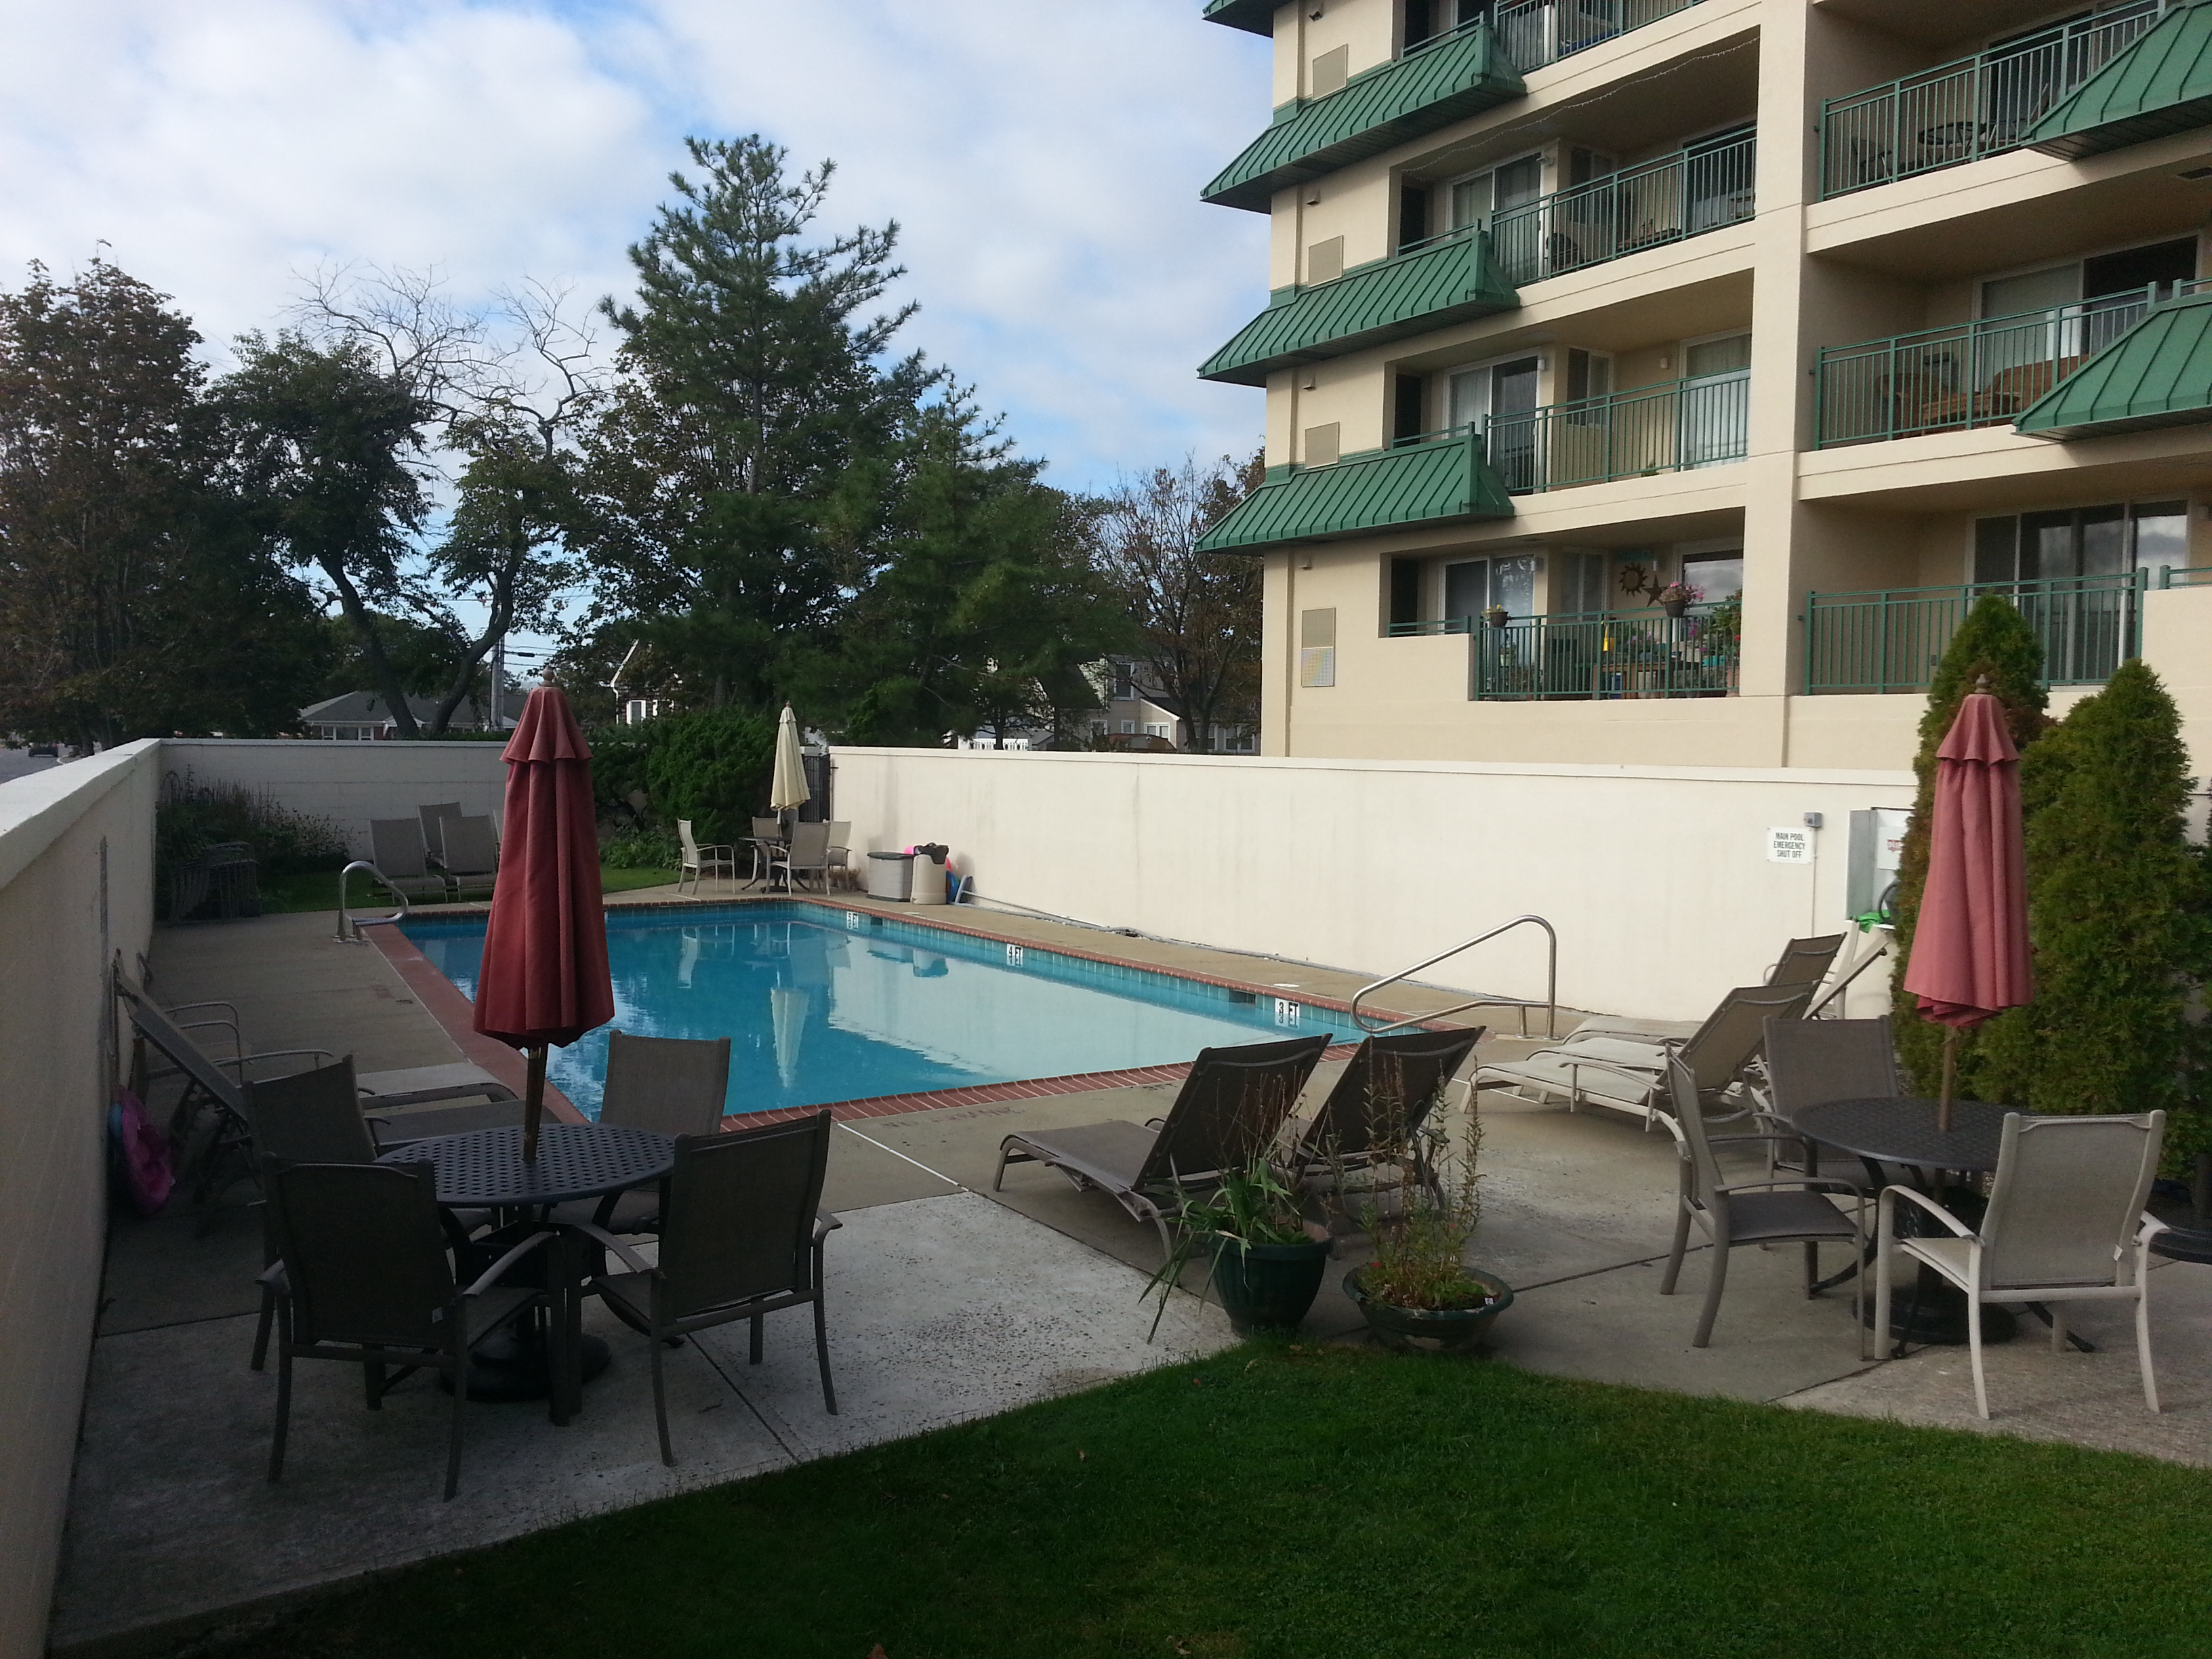 Among the amenities at Ocean Pointe is this community pool.